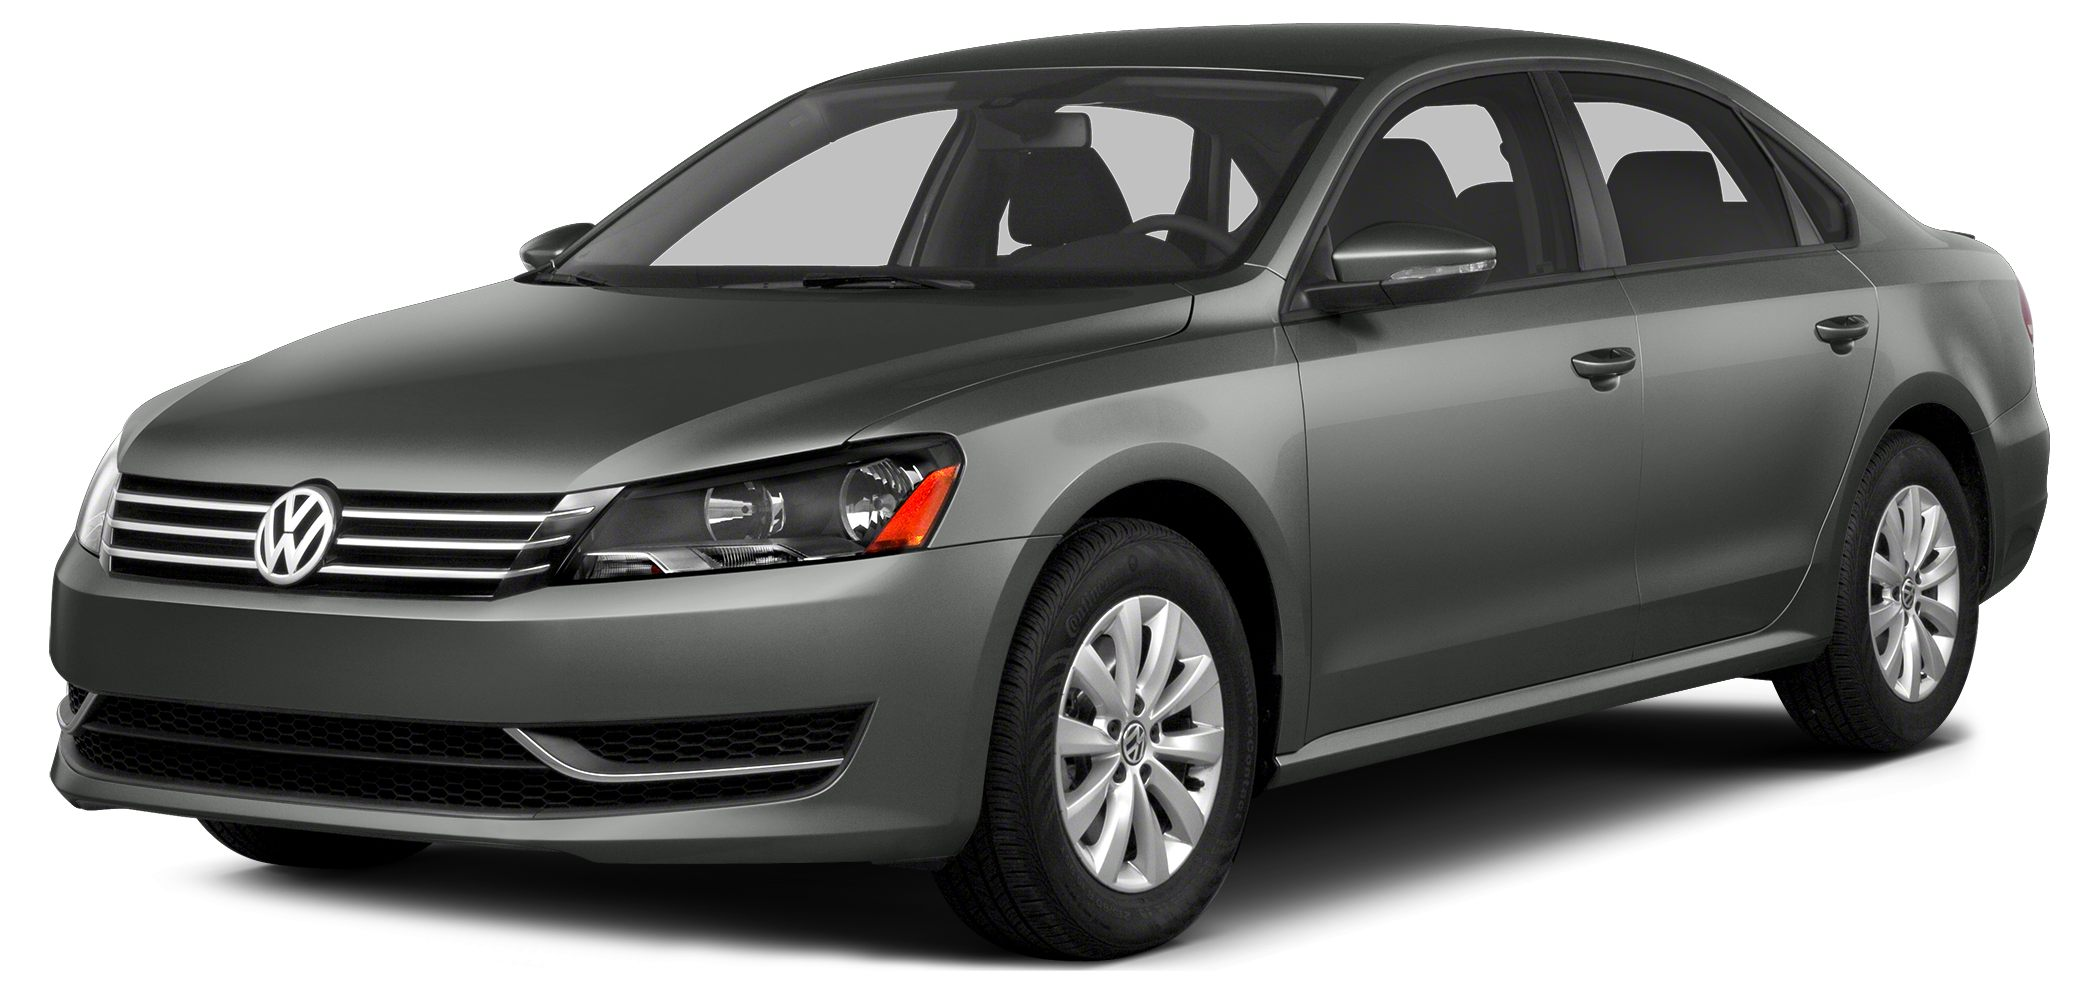 2015 Volkswagen Passat 18T S 2015 Volkswagen Passat 18T S in Platinum Gray Metallic All the rig